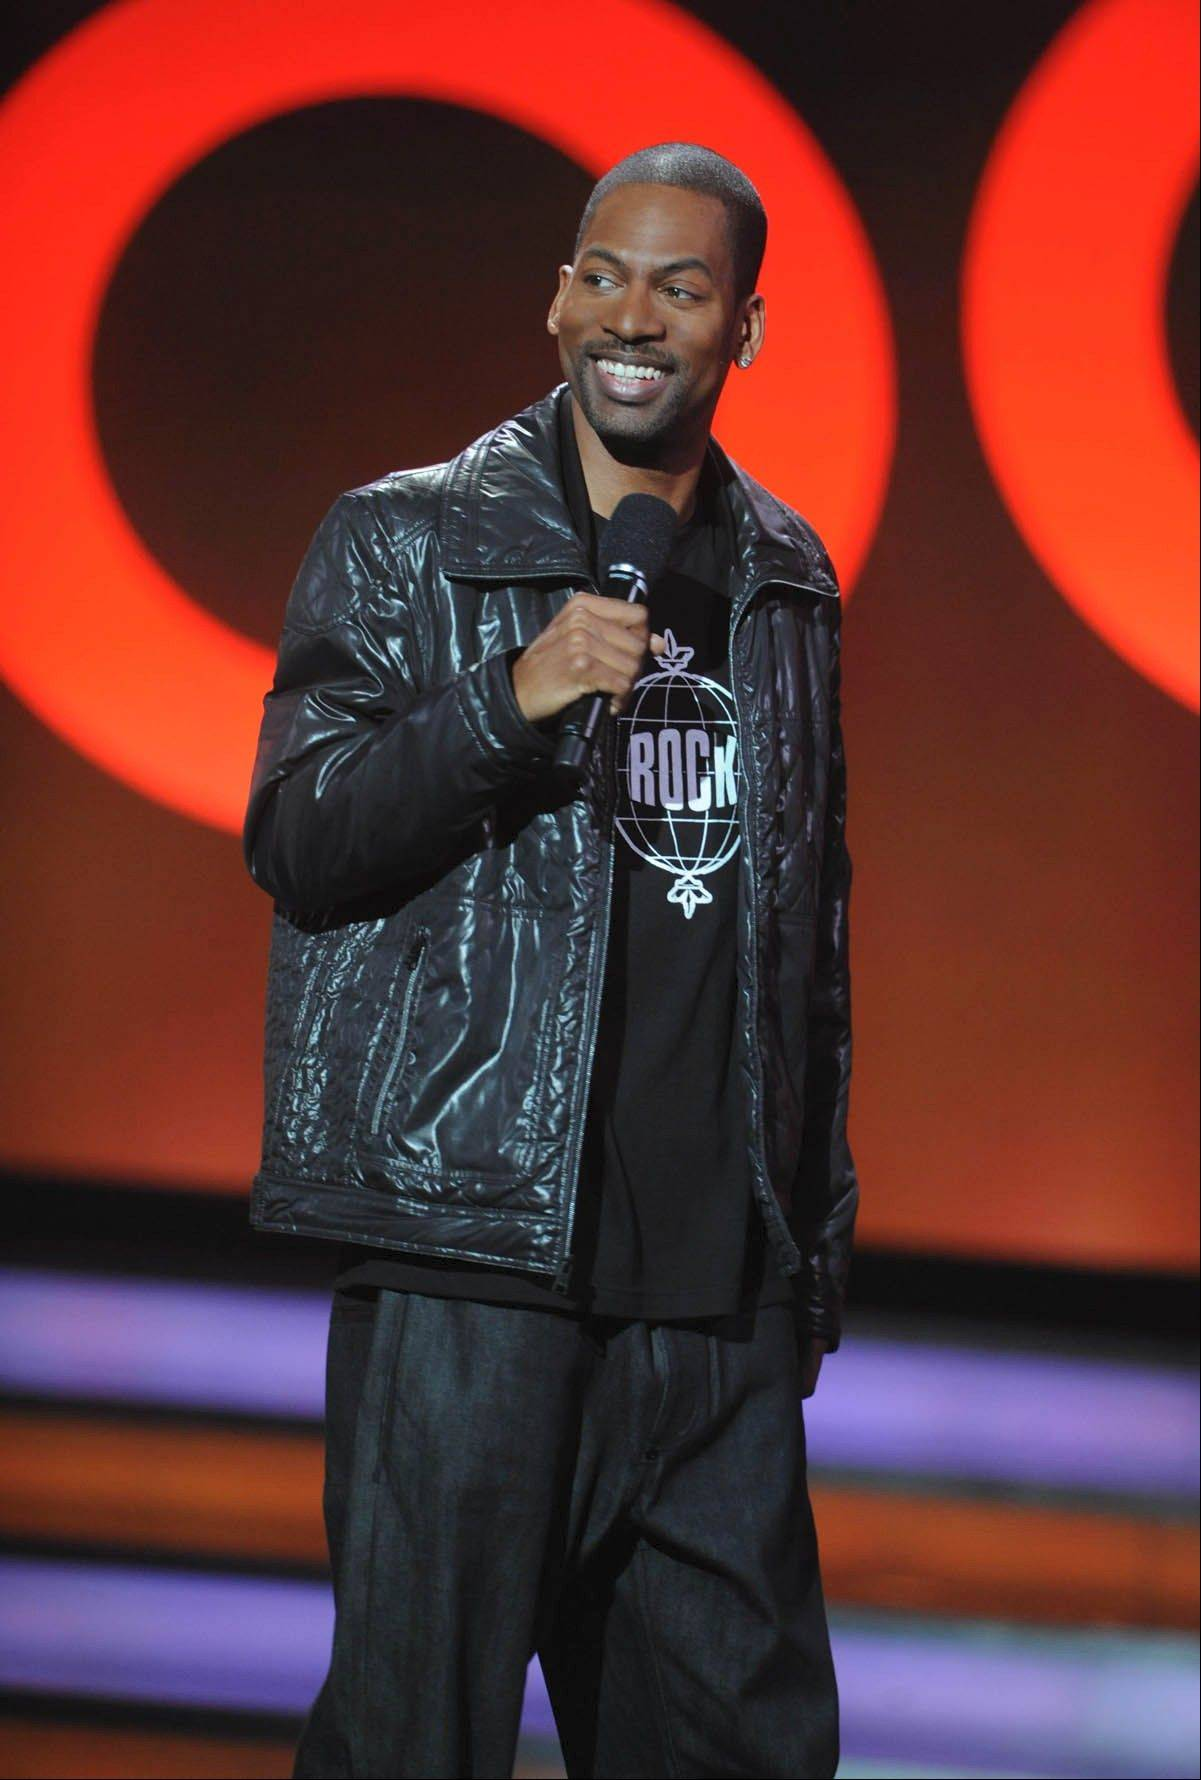 Tony Rock will perform at the Improv Comedy Showcase in Schaumburg.